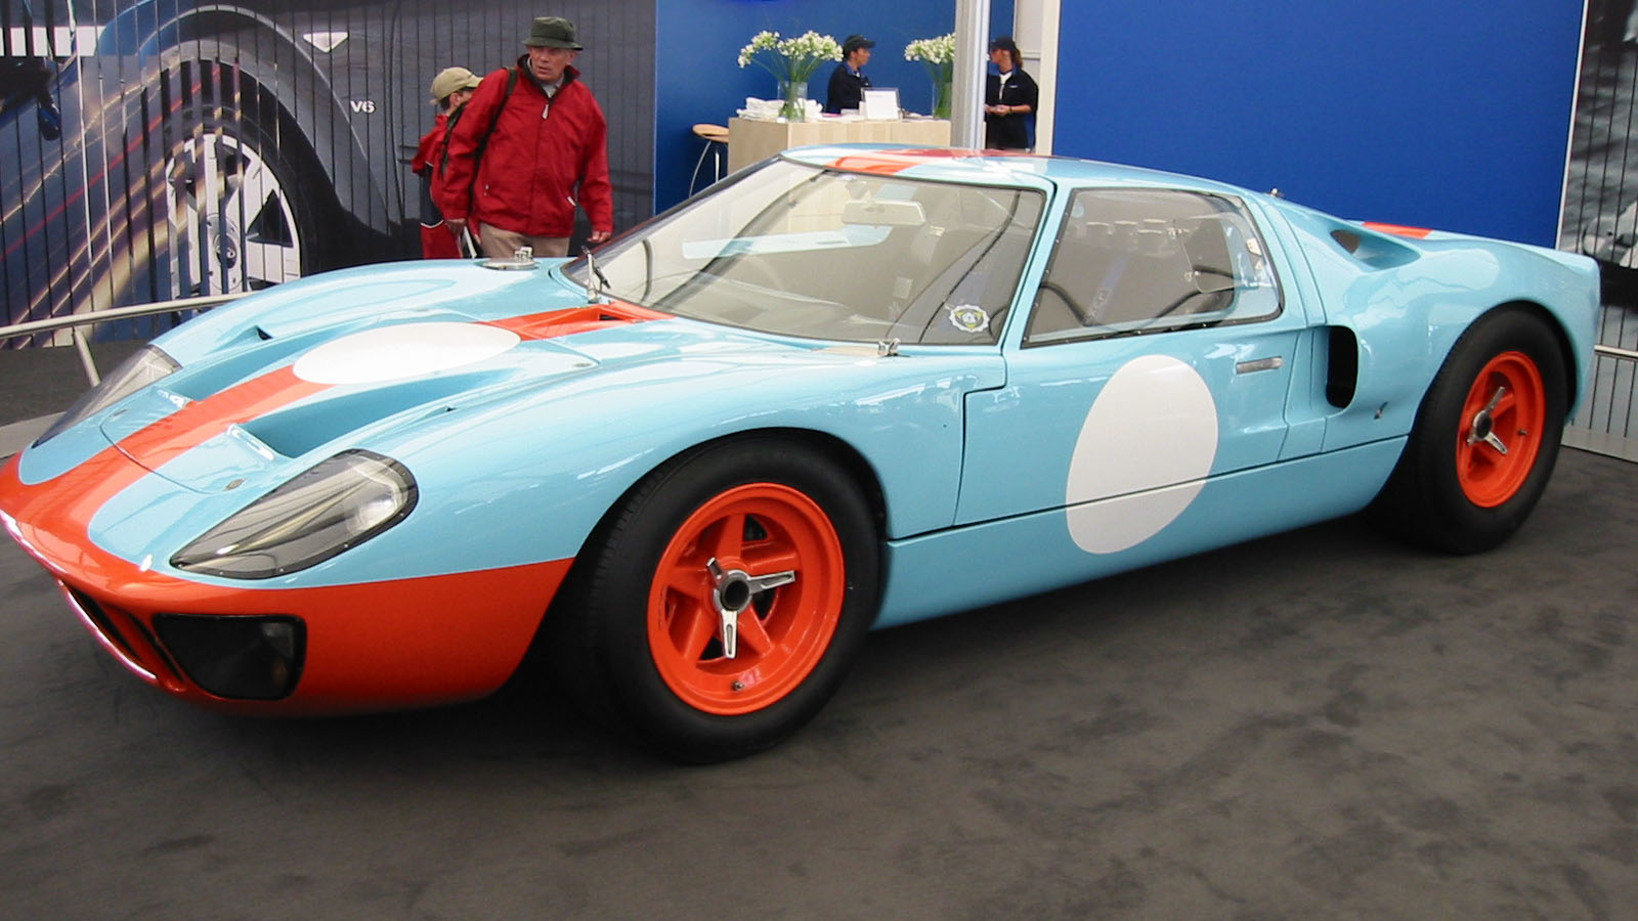 GT40 at Goodwood 作者 edvvc from London, UK CC BY 2.0